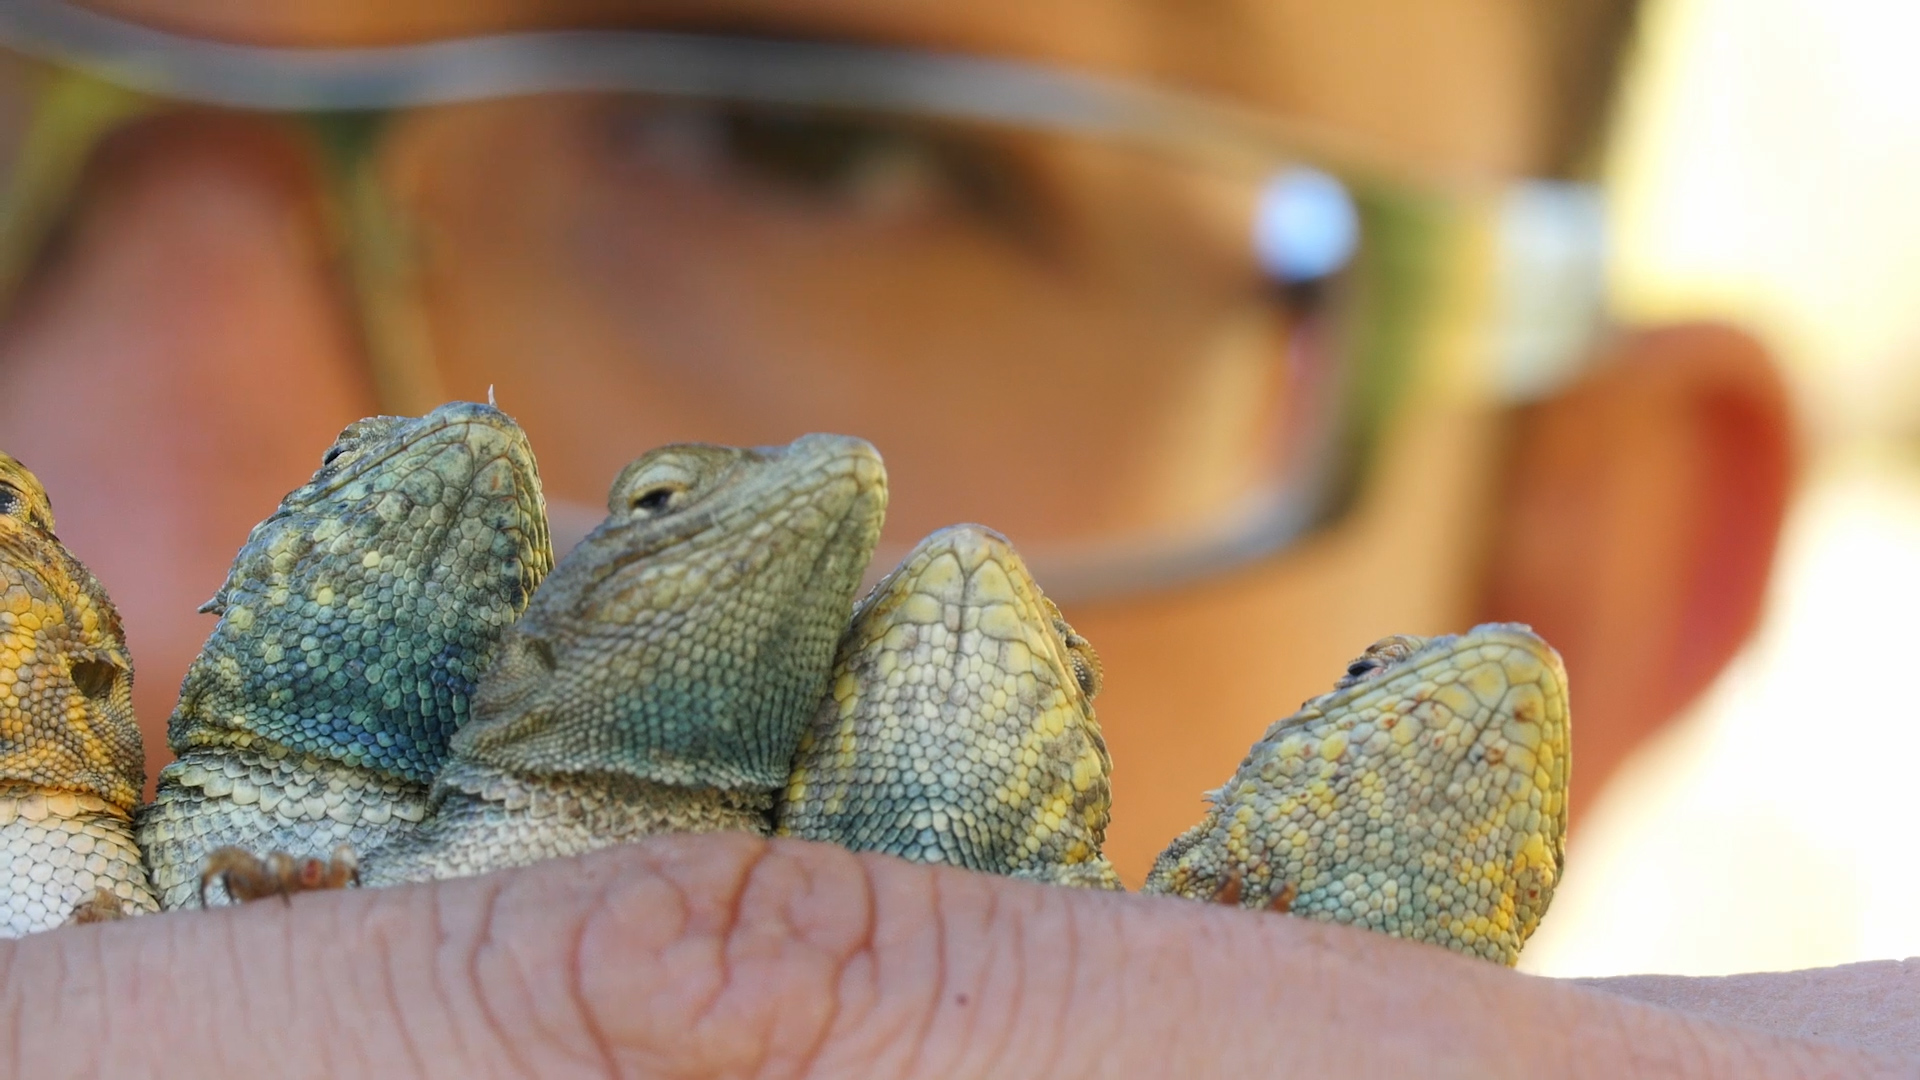 Rafa Lara, a member of the UC Santa Cruz research team, looks at the variation in throat color while collecting side-blotched lizards